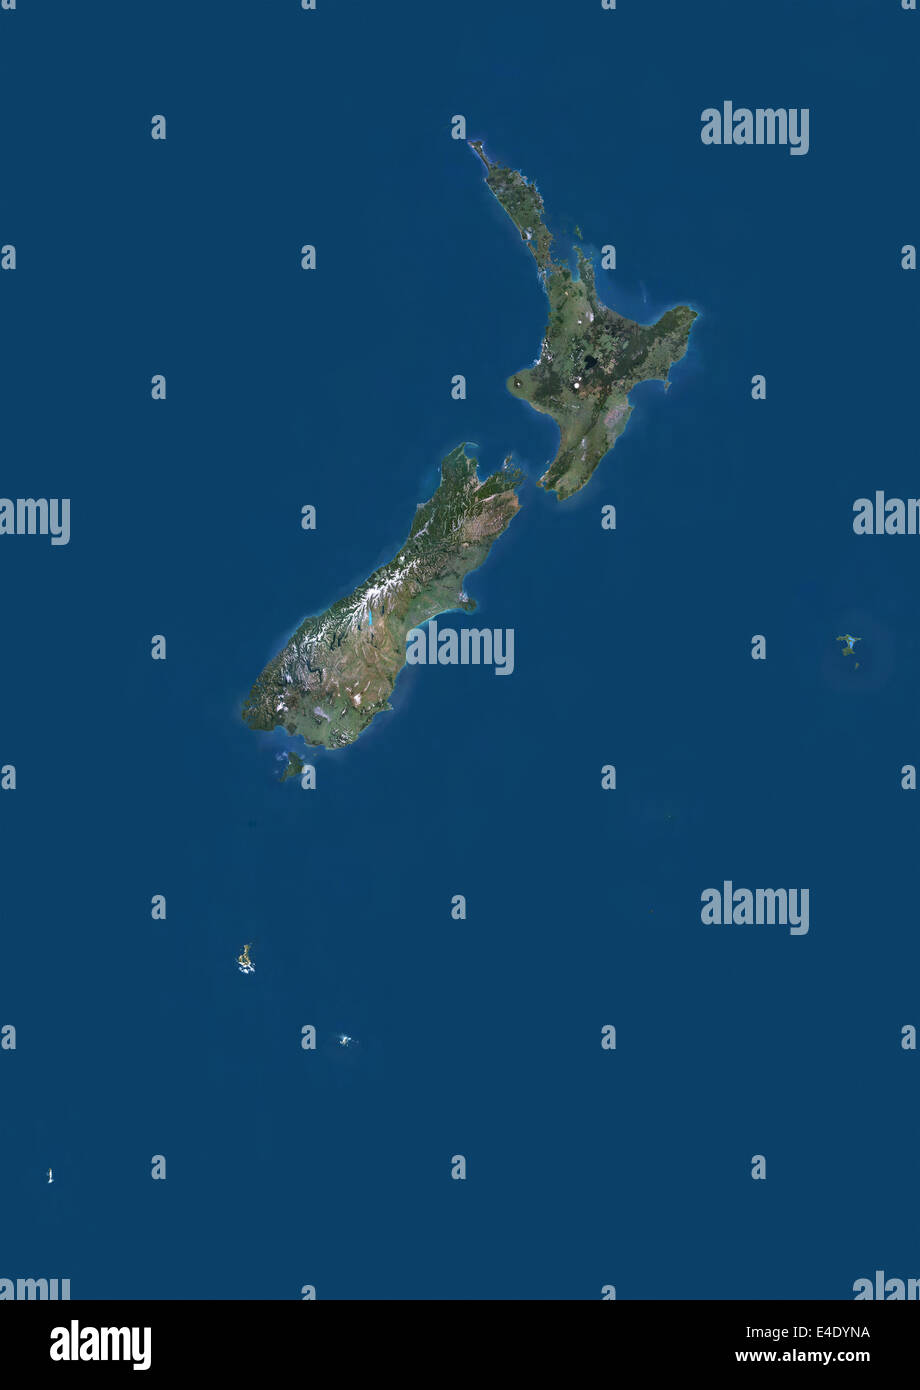 New Zealand Map Satellite Stock Photos & New Zealand Map ... on aerial view world map, continents and oceans flat map, space map, security map, phone map, mobile map, sat map, sky map, networking map,